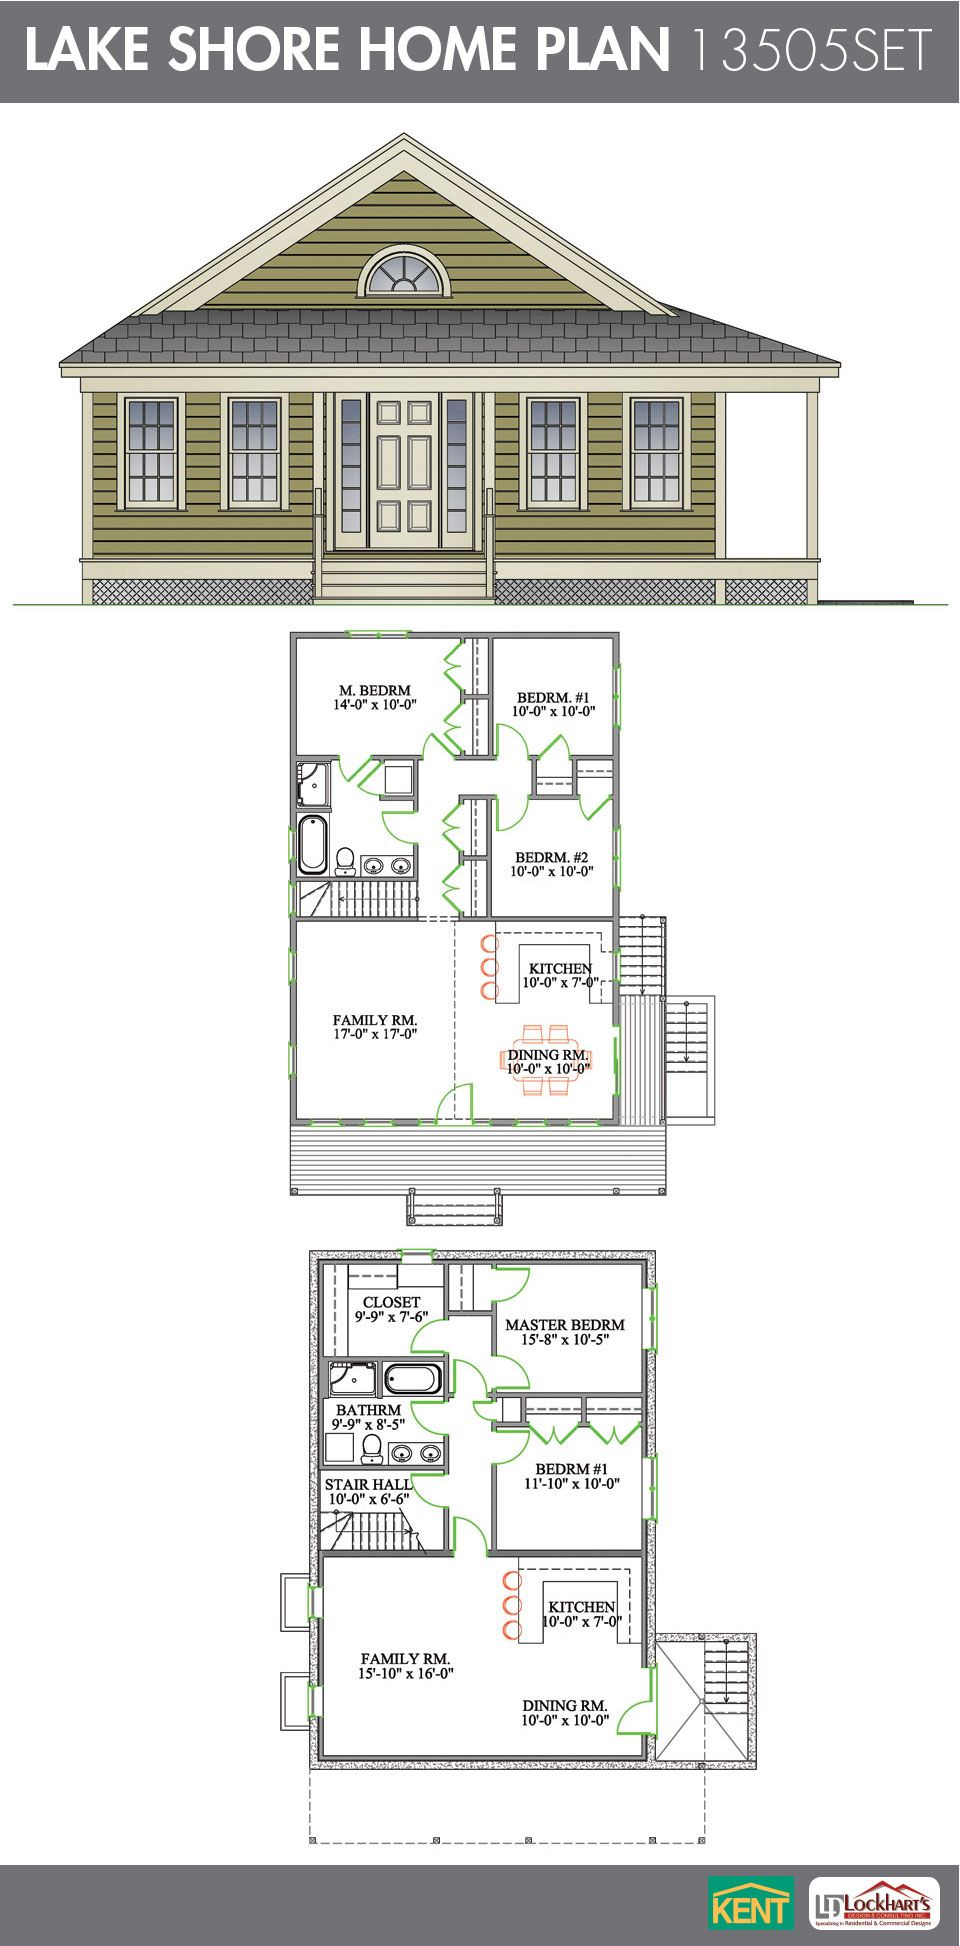 Lake Shore Home Plan Kent Building Supplies House Plans Bungalow House Plans Bungalow Homes